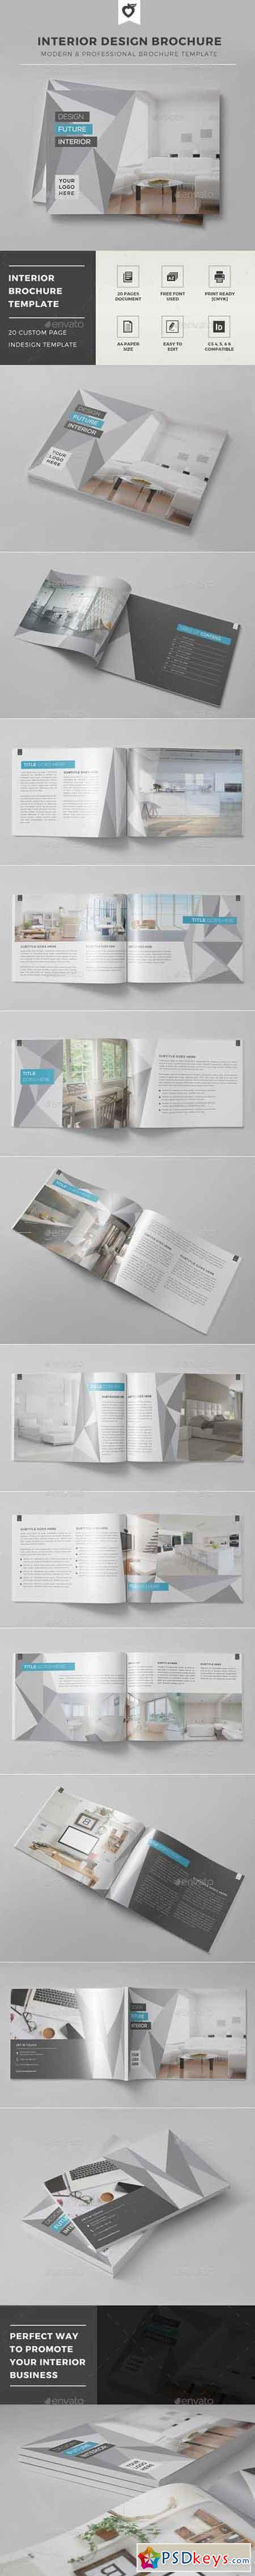 Interior Design Brochure Template 12474610